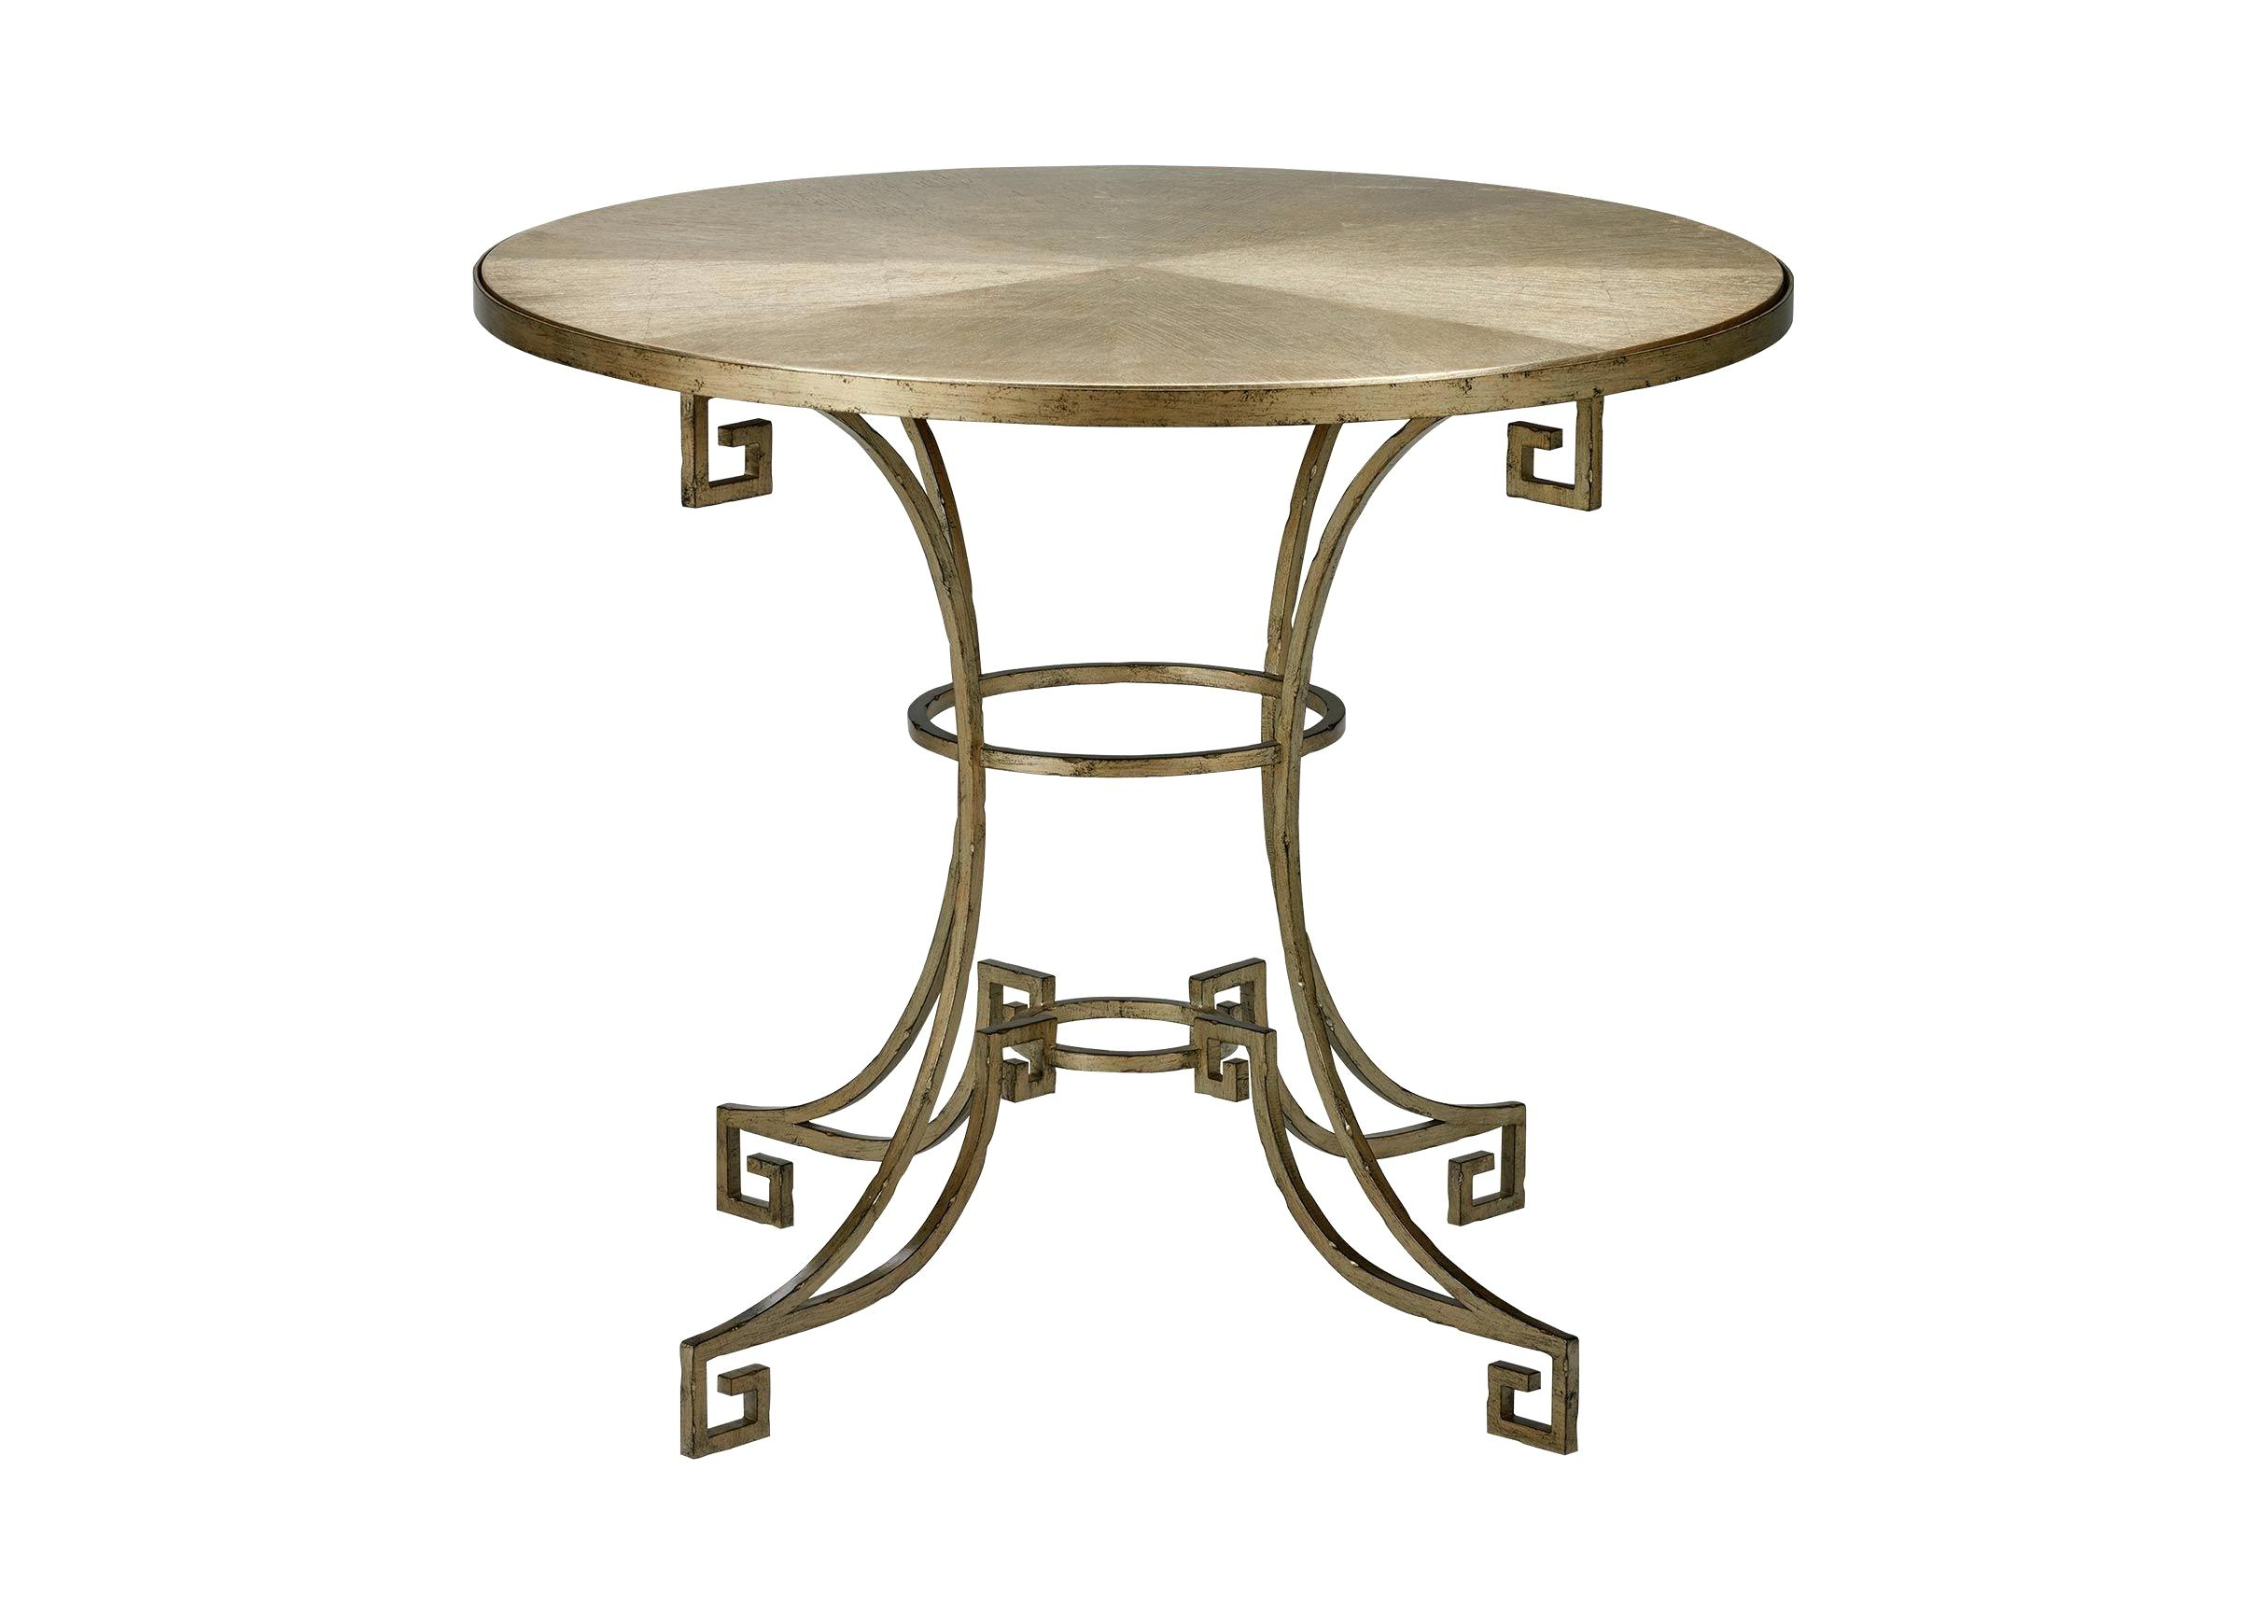 metal tray accent table round folding reviews birch lane kitchen island side amazing full size coffee and end sets with storage gold knobs plastic garden tiffany lights bedside